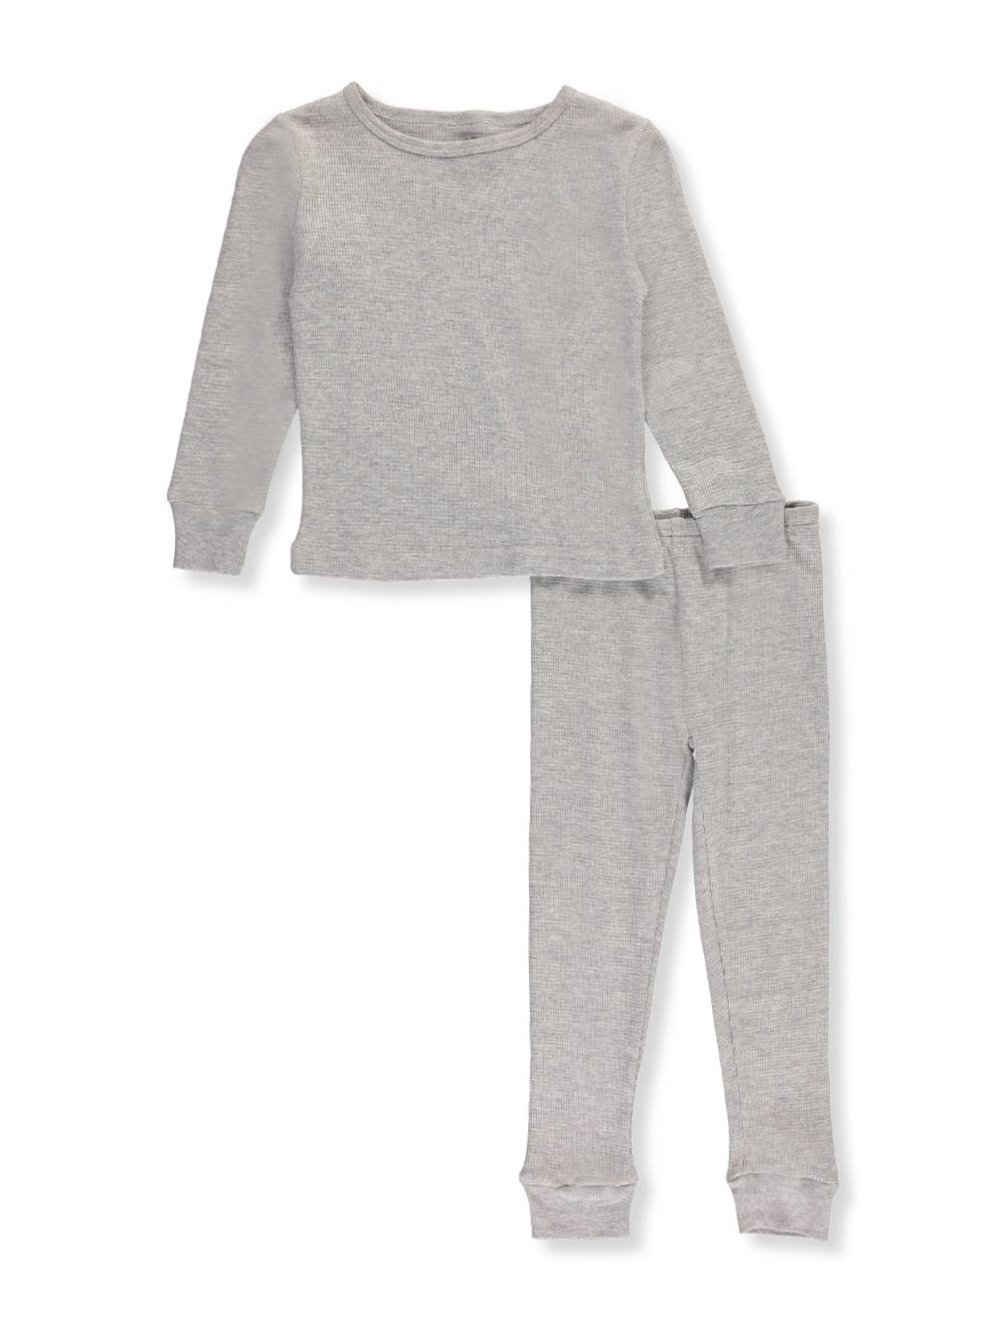 Ice2O Little Girls' Toddler 2-Piece Thermal Long Underwear Set